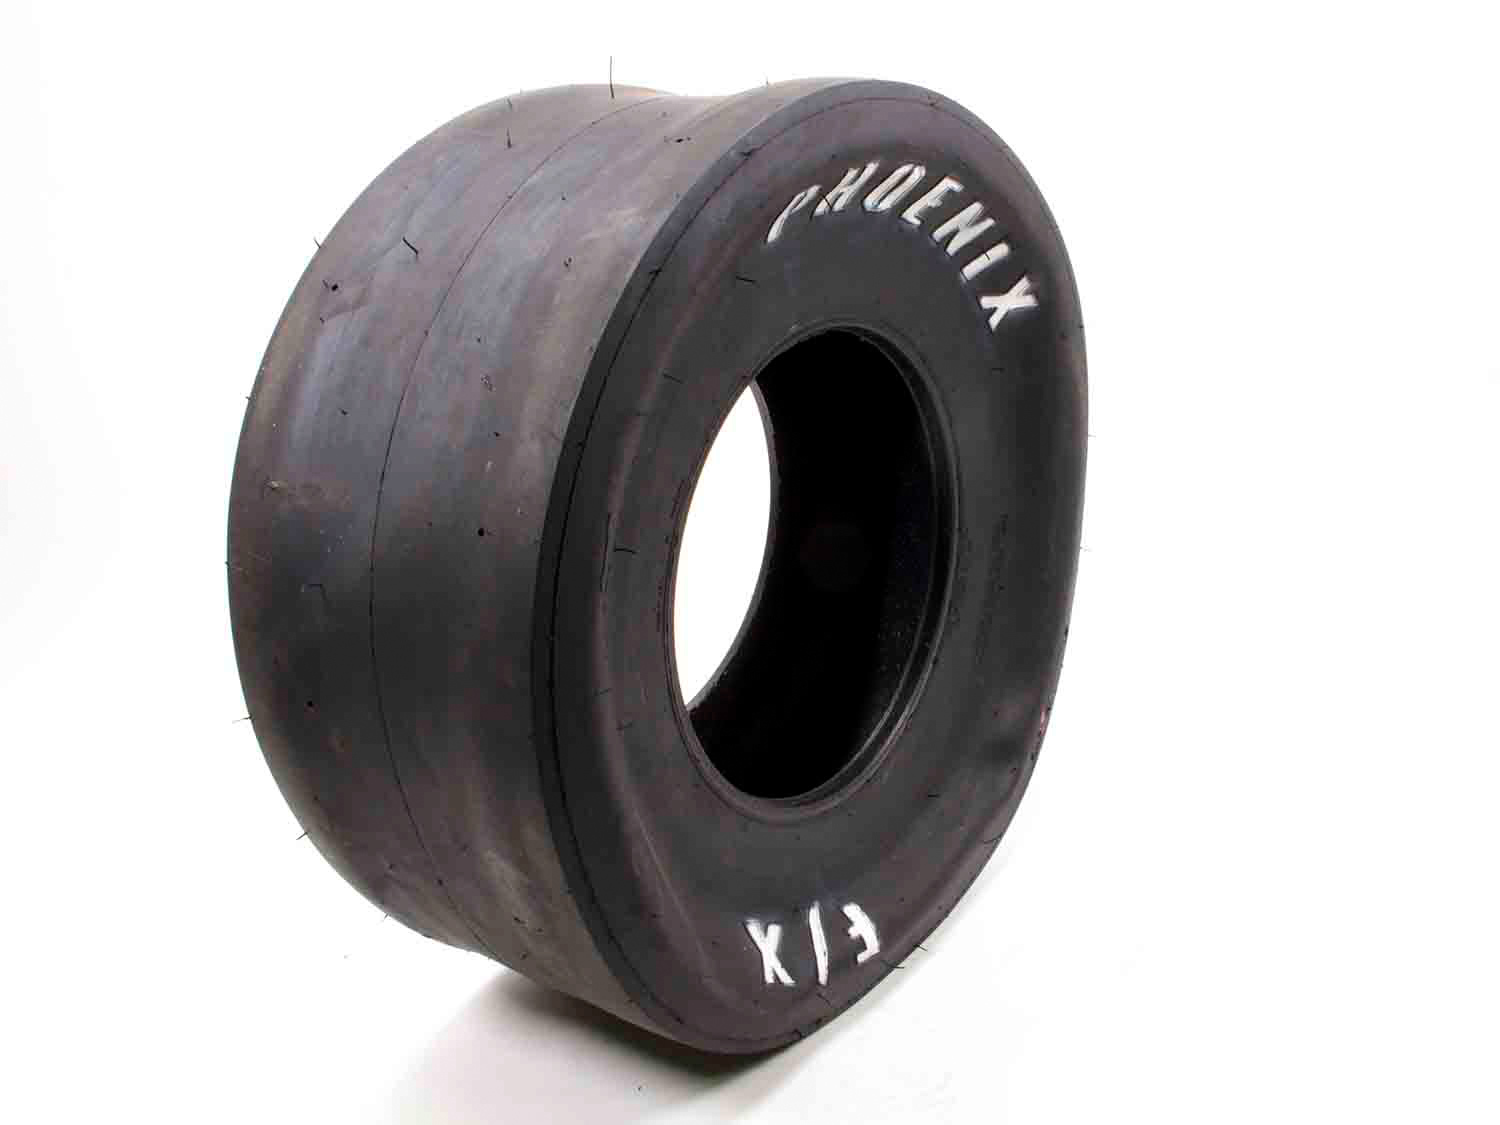 Phoenix Racing Tires PH367 Tire, Drag FX Slick, 32.0 x 14.0-15, Bias Ply, F9 Compound, White Letter Sidewall, Each